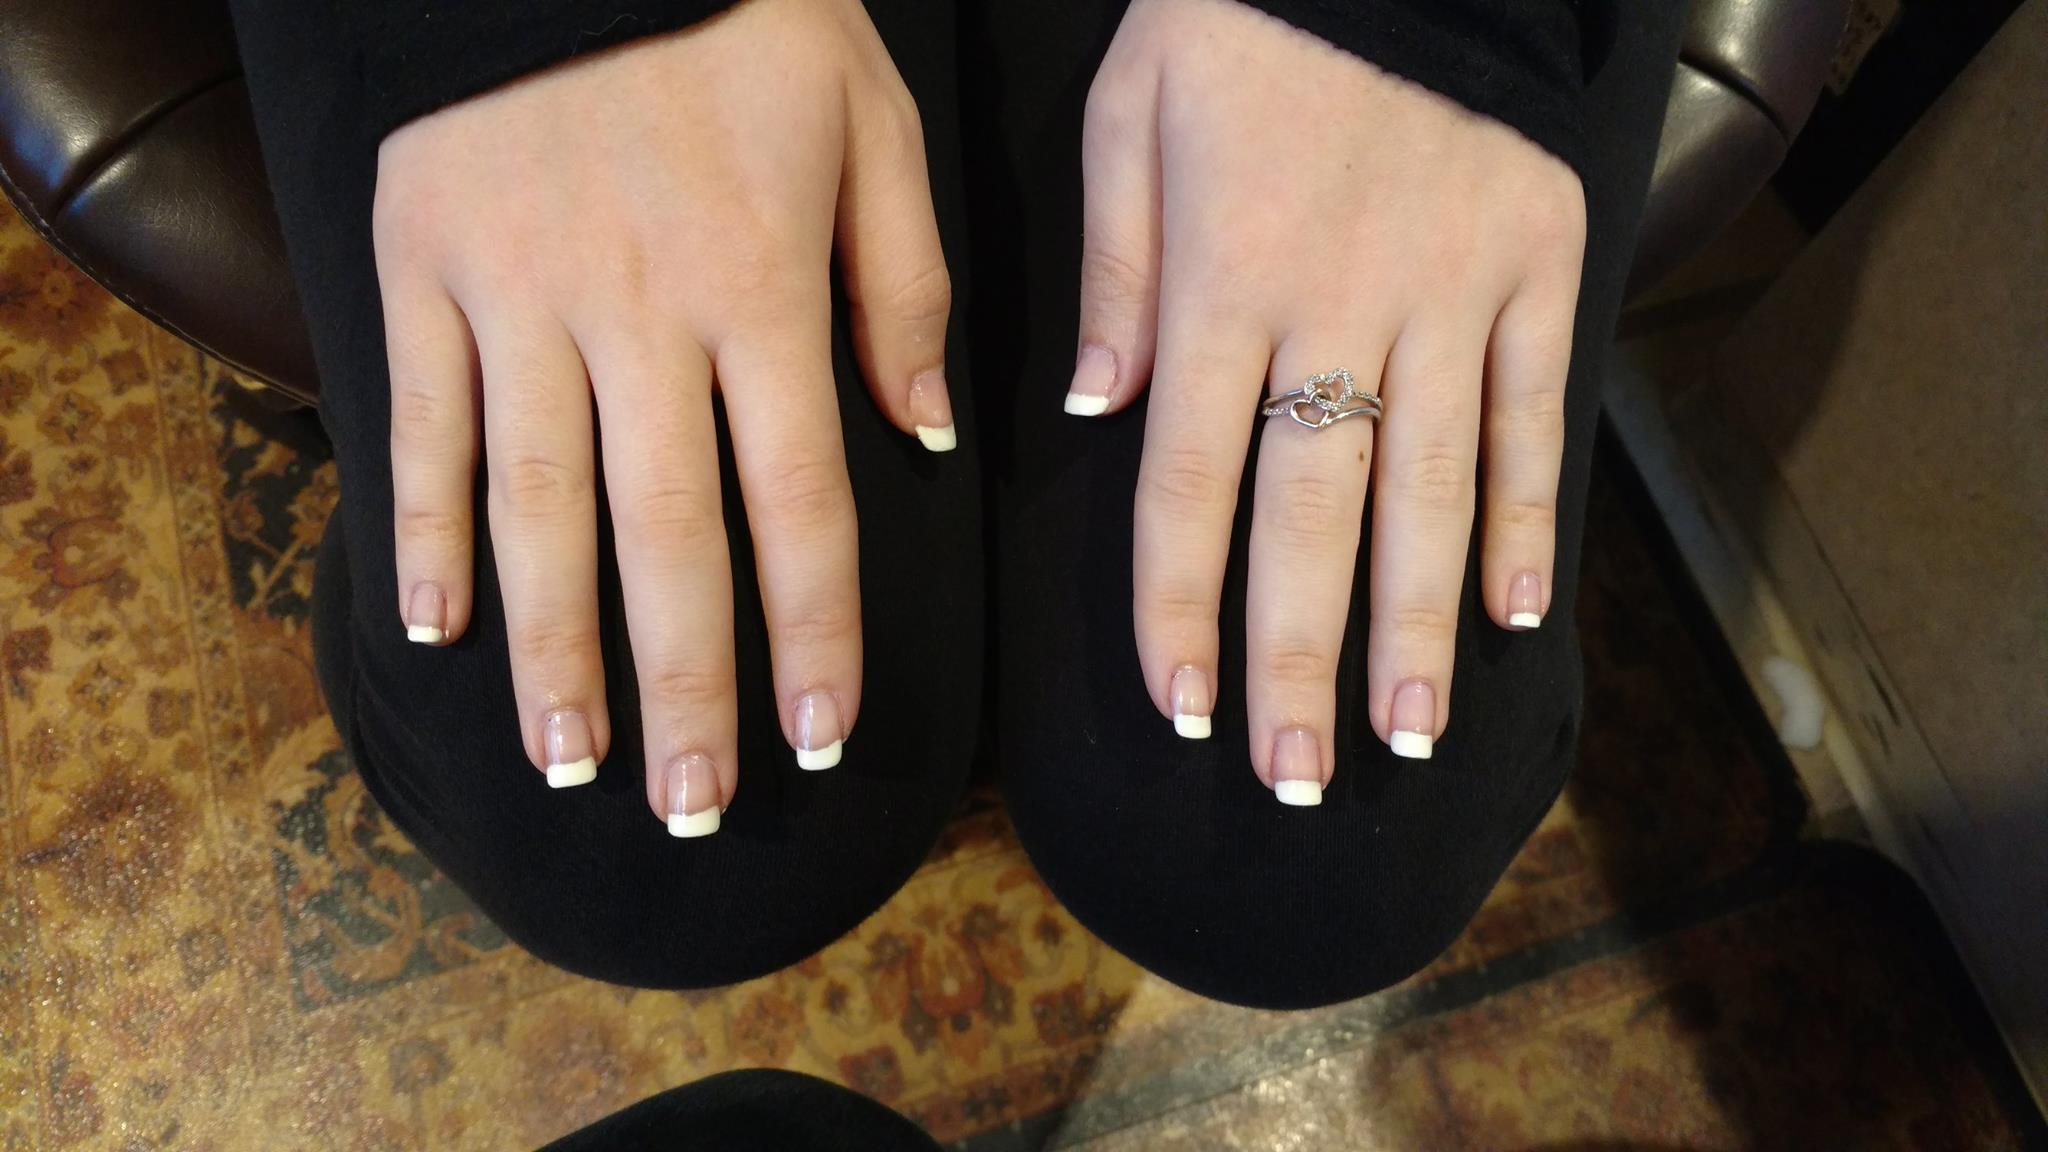 The Nail Salon: Why YOU Should Go To A Professional 1